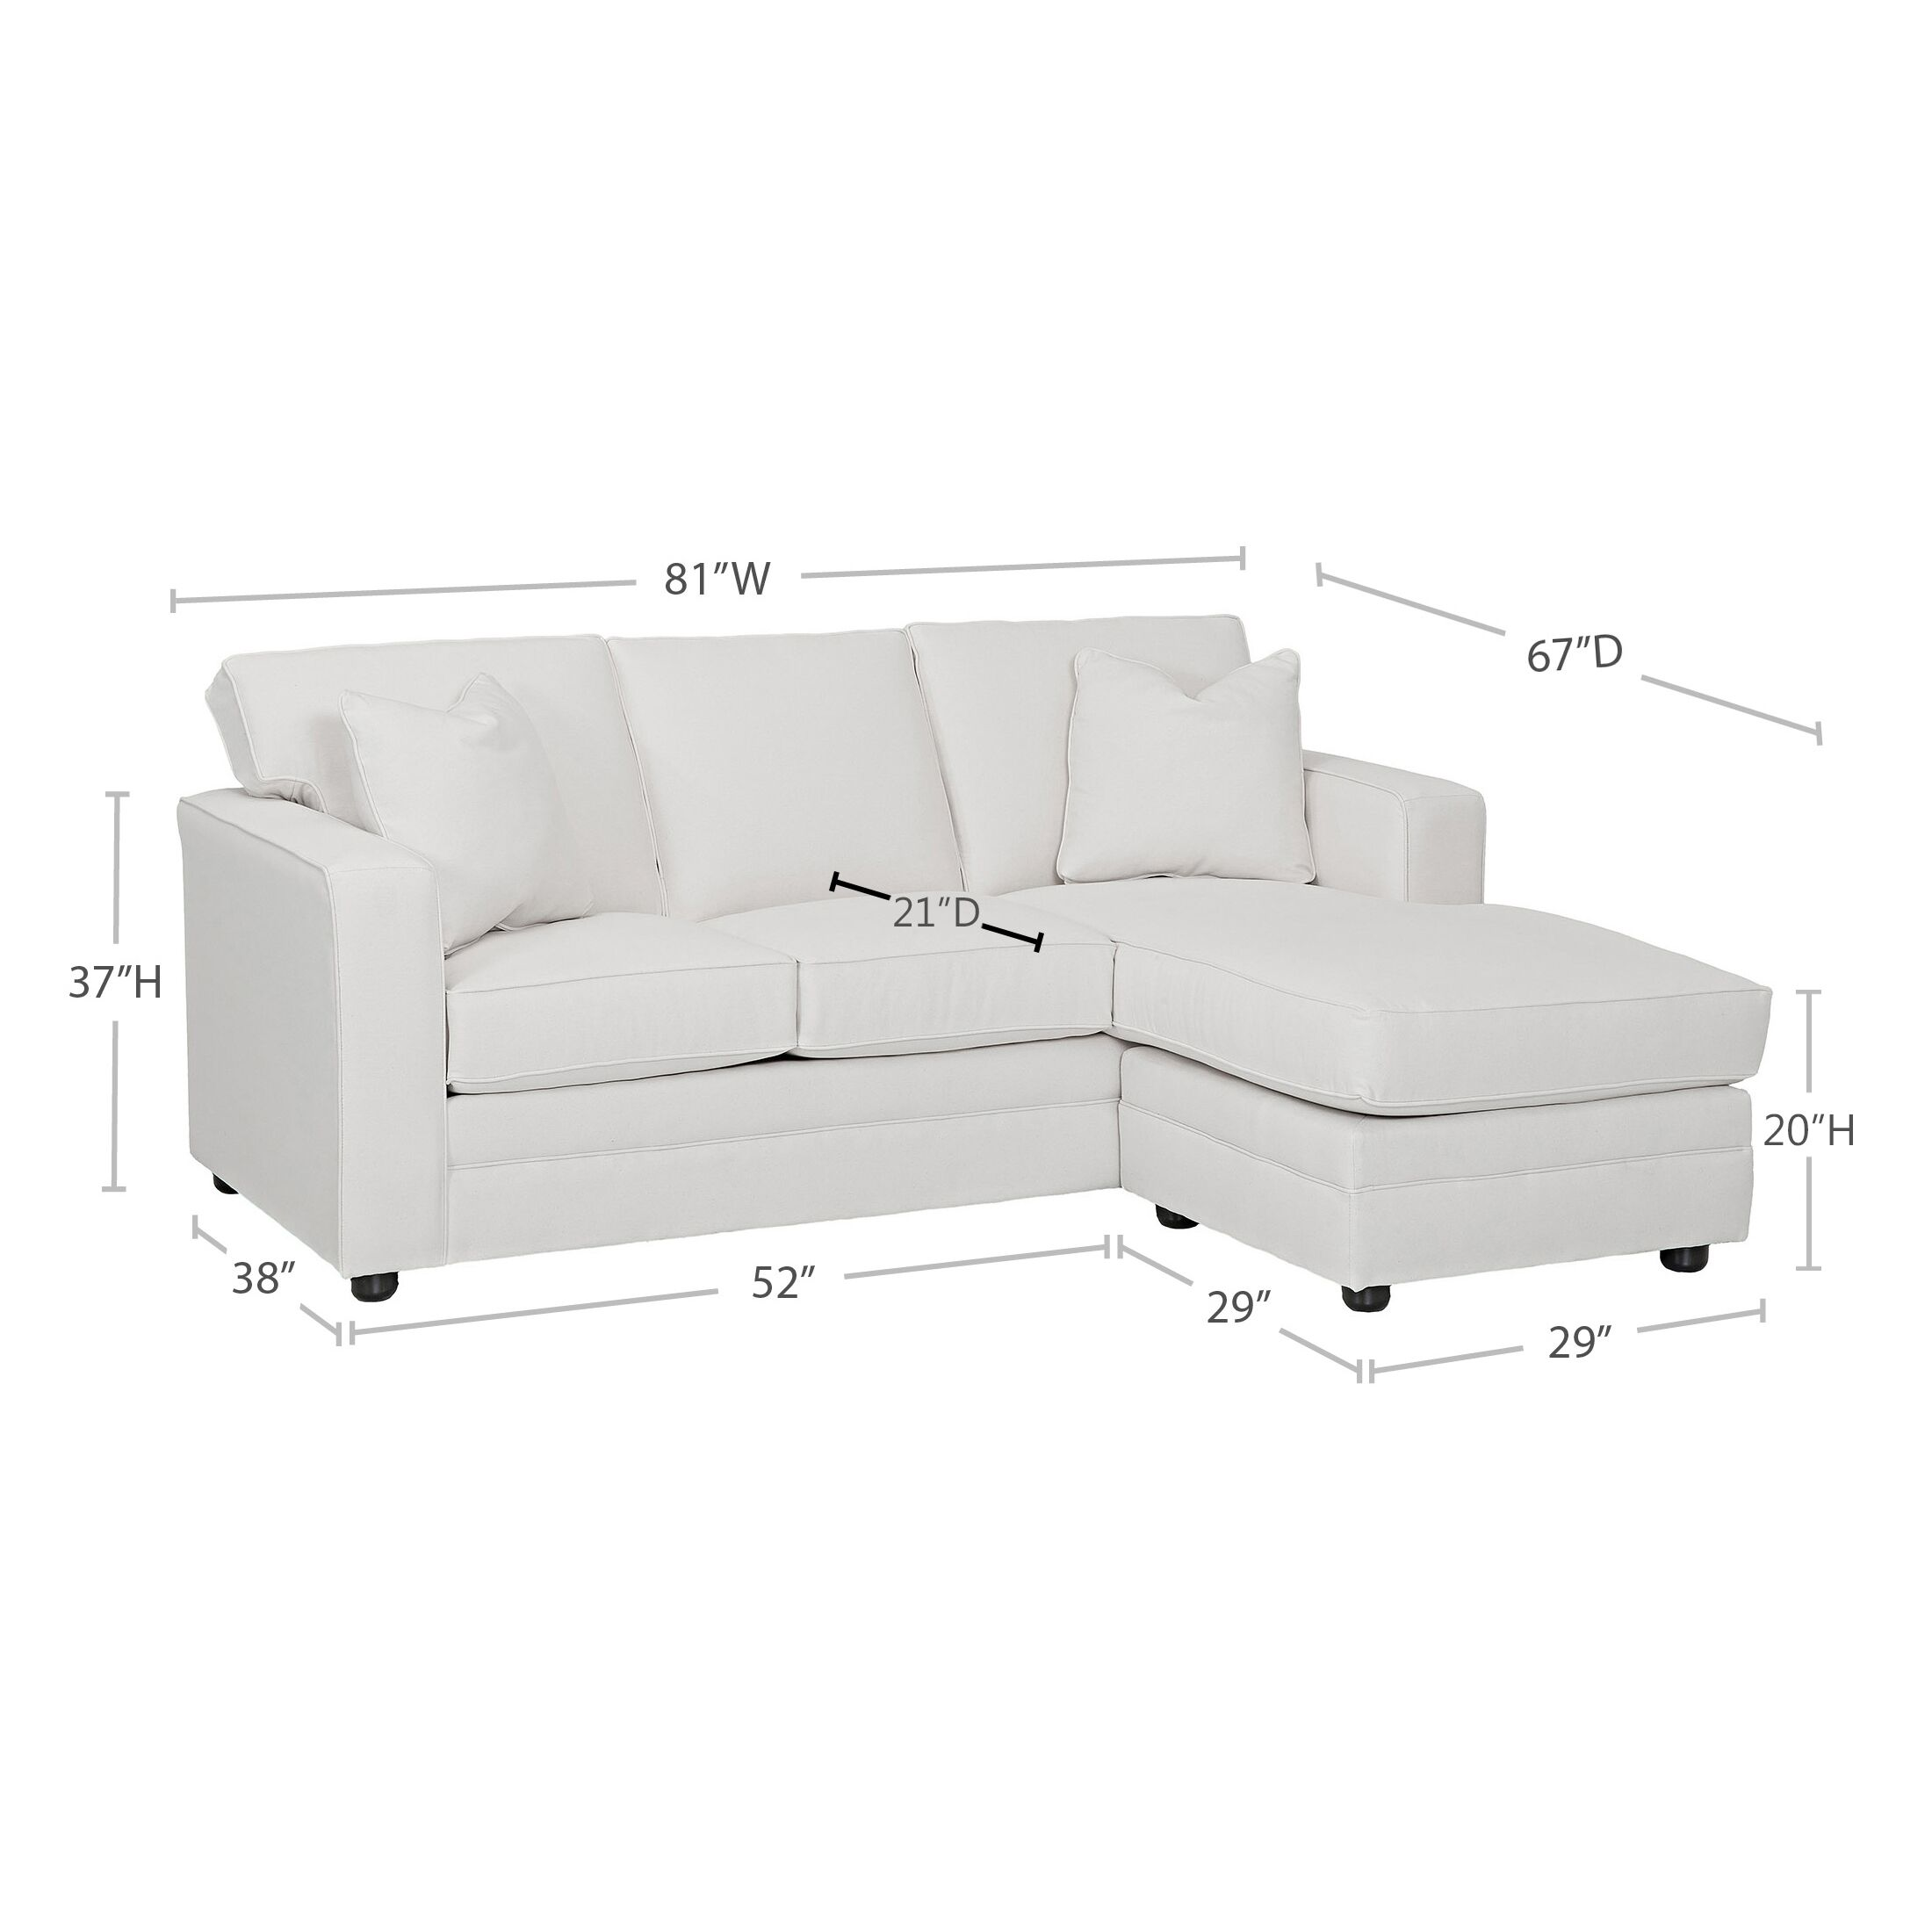 Andrew Reversible Sectional Body Fabric: Bayou Sunshine, Pillow Fabric: Calvin Moondust, Piping Fabric: Spinnsol Butter